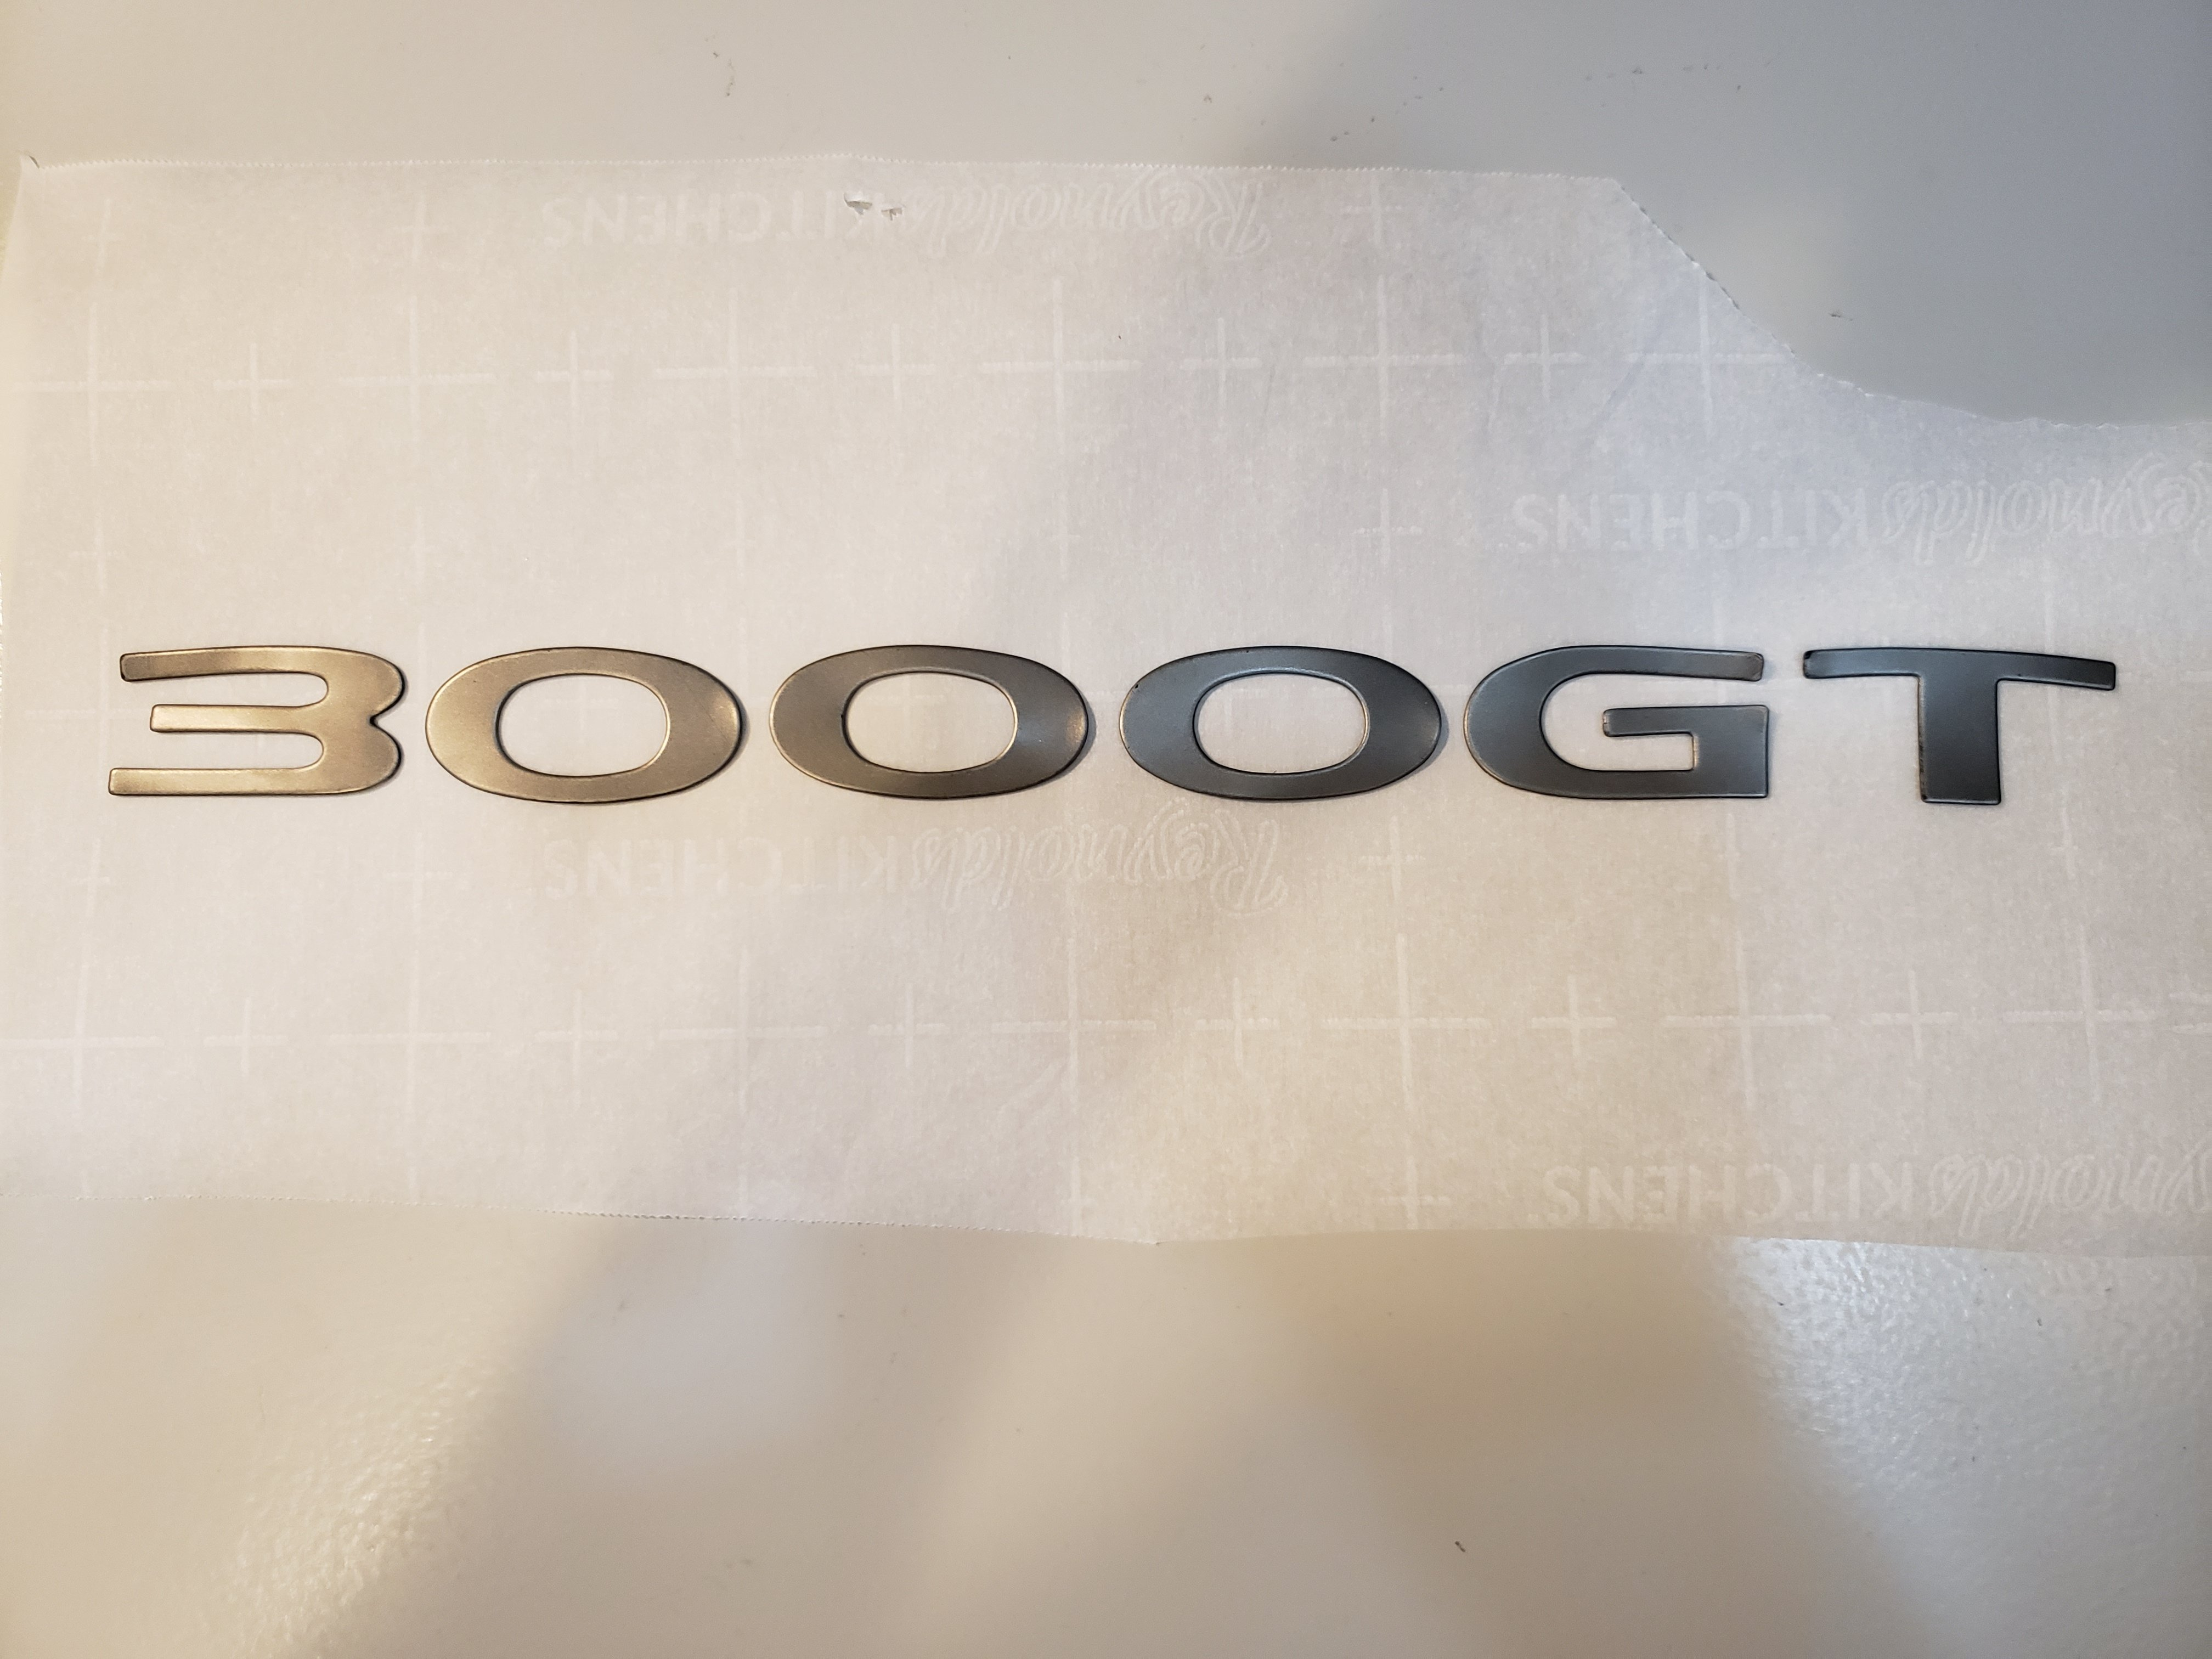 Extremely Rare Rear 3000GT Emblem In Mint Condition-20191003_173736_1570139015620.jpg